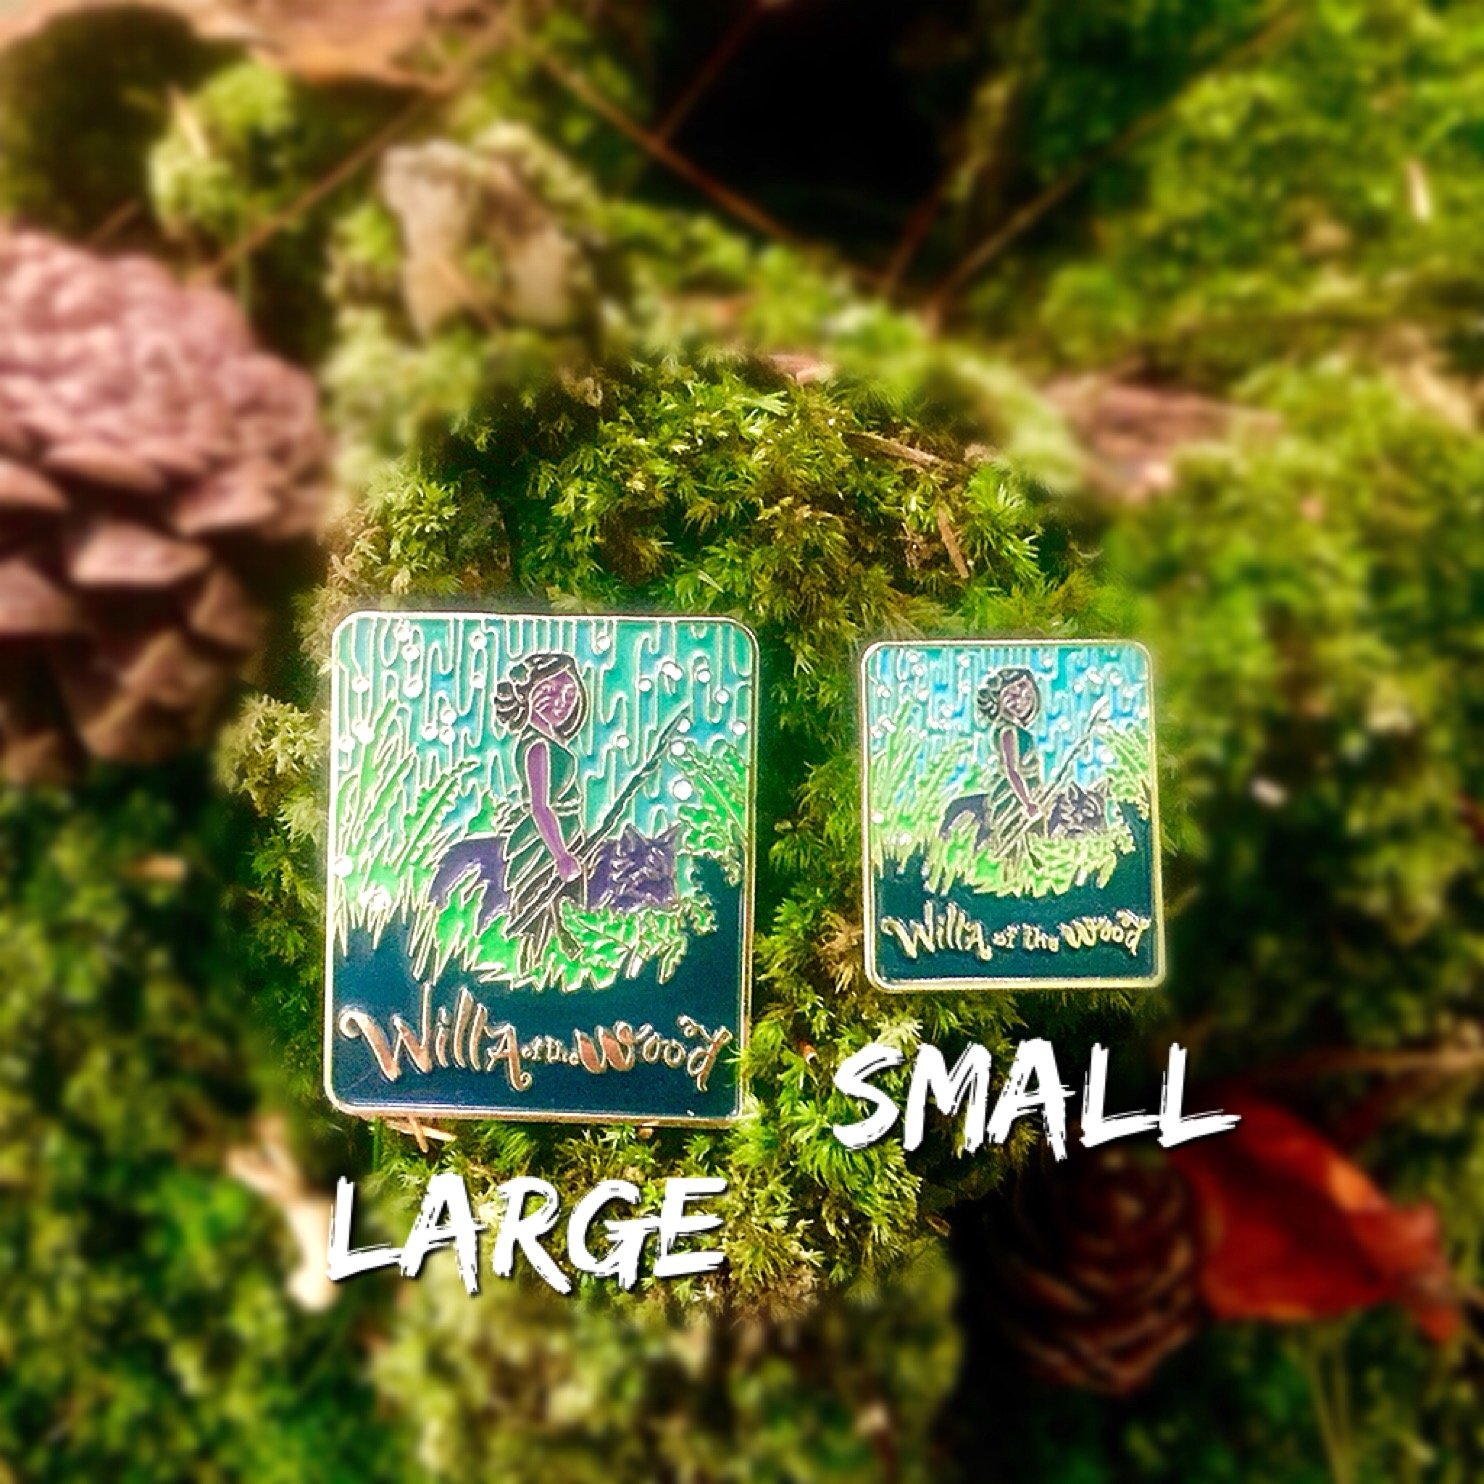 Gold Enamel Pin - Willa of the Wood - Small